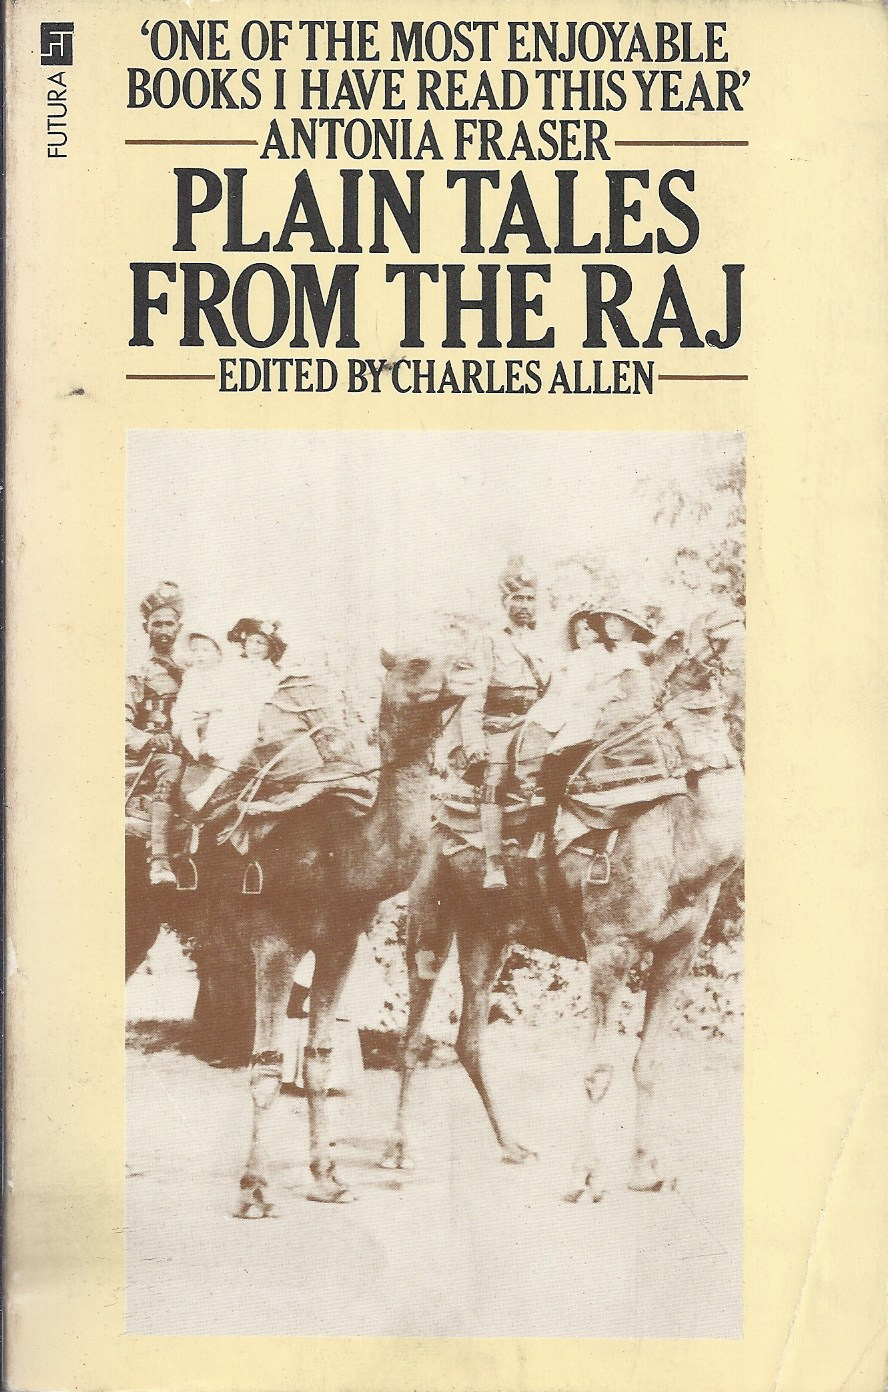 Image for Plain Tales from the Raj Images of British India in the Twentith Century